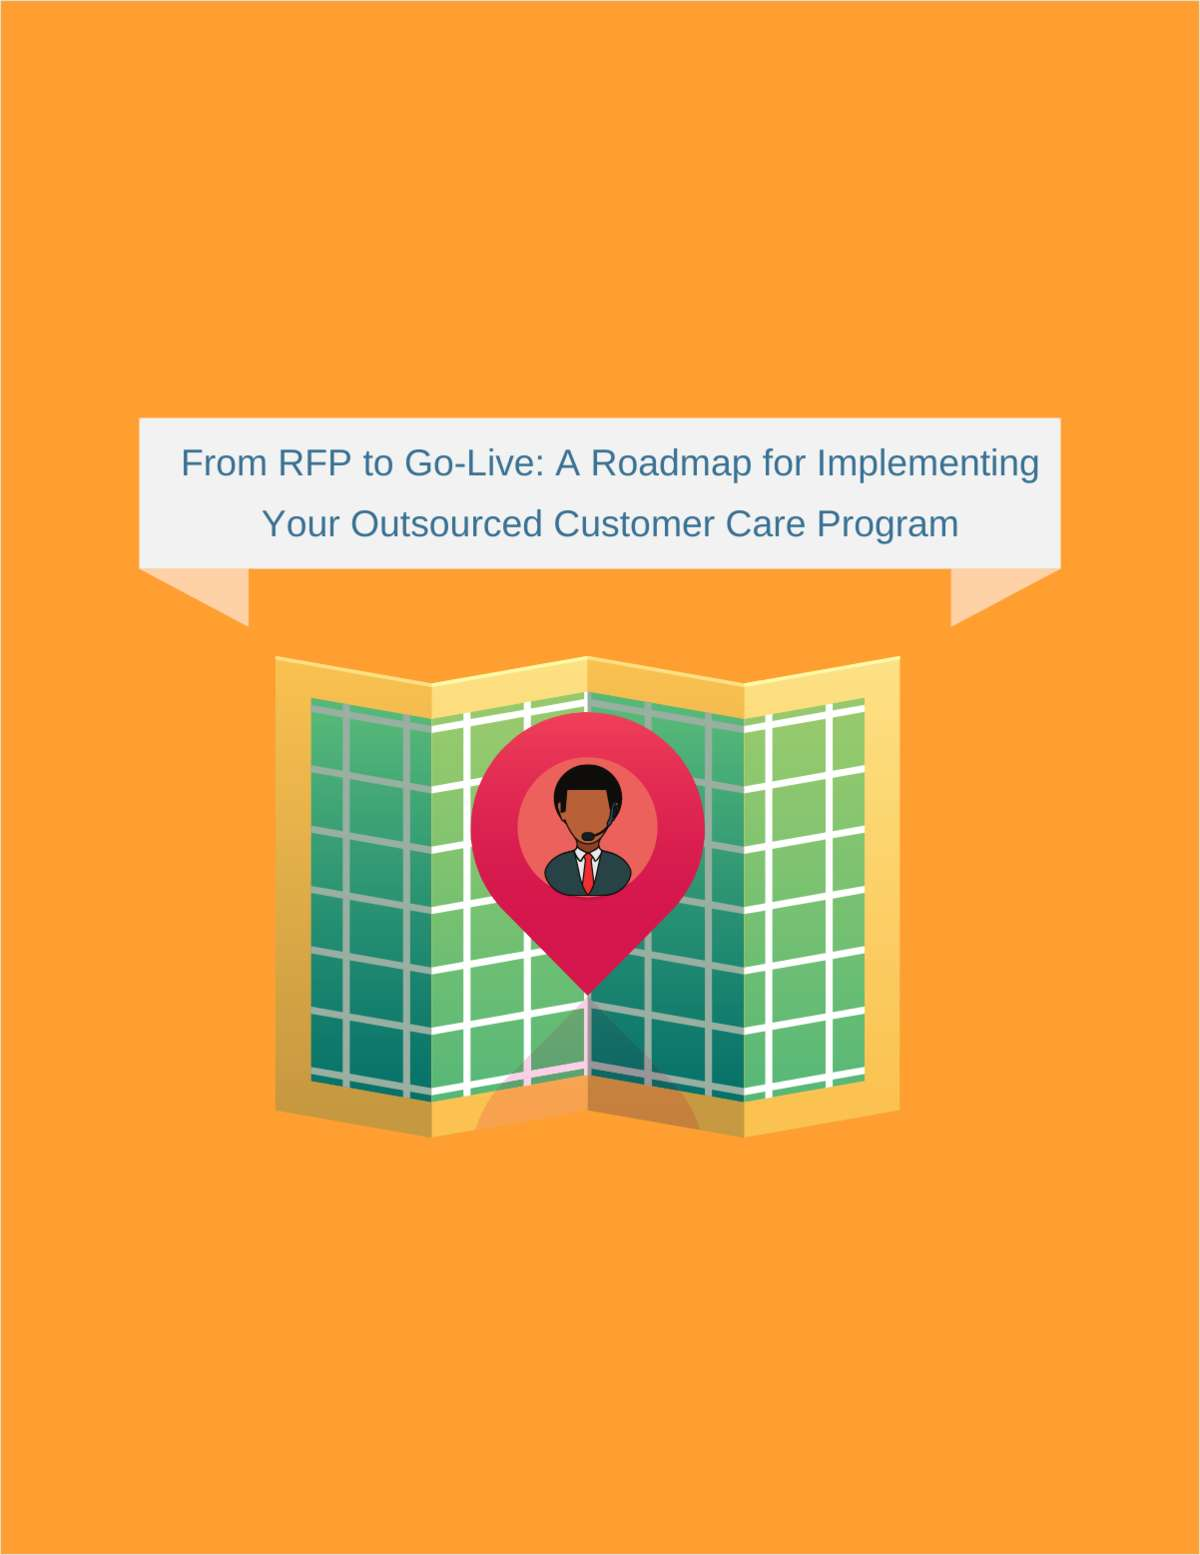 From RFP to Go-Live: A Roadmap for Implementing Your Outsourced Customer Care Program